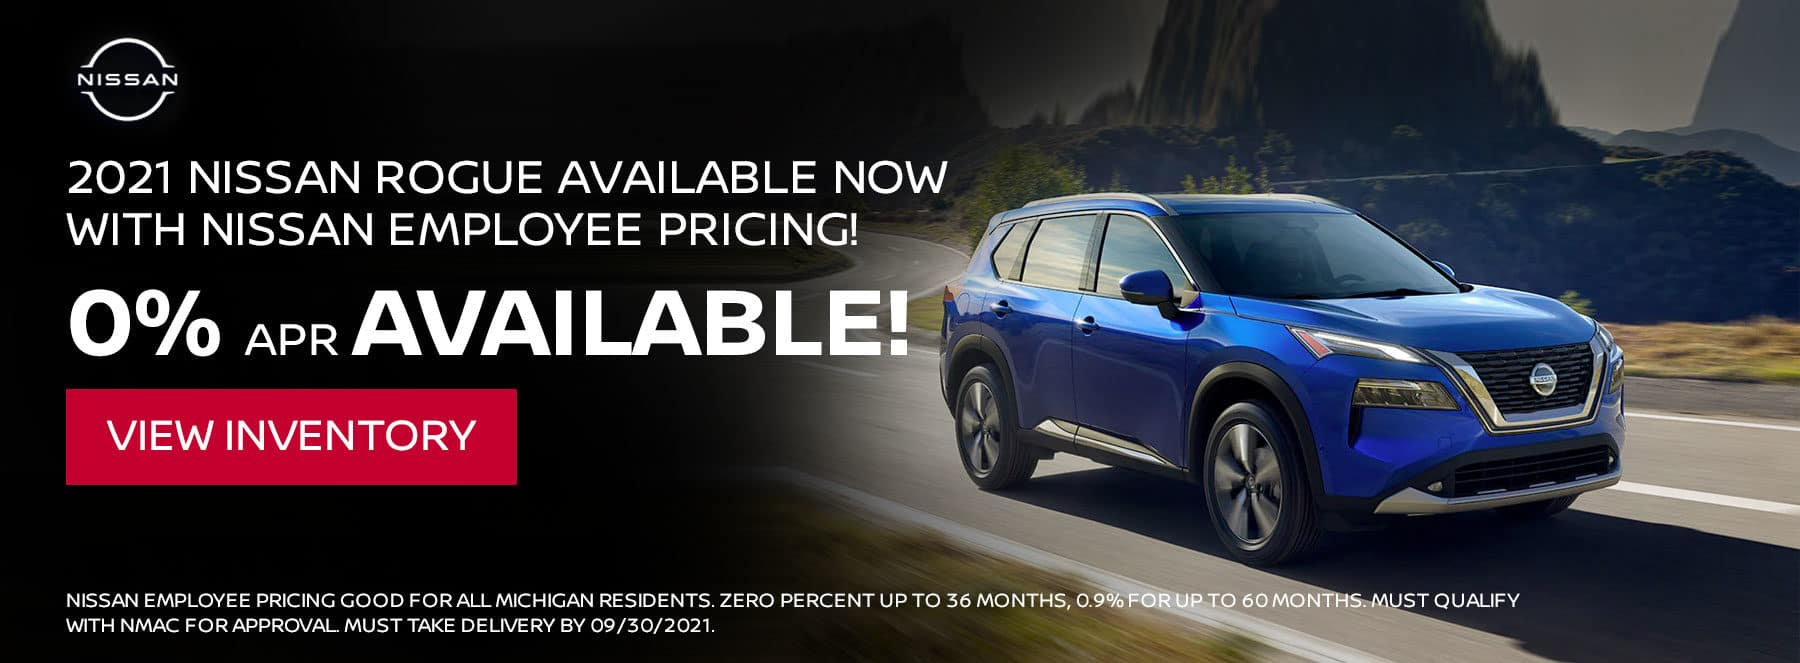 2021 Nissan Rogue available now with Nissan Employee Pricing!